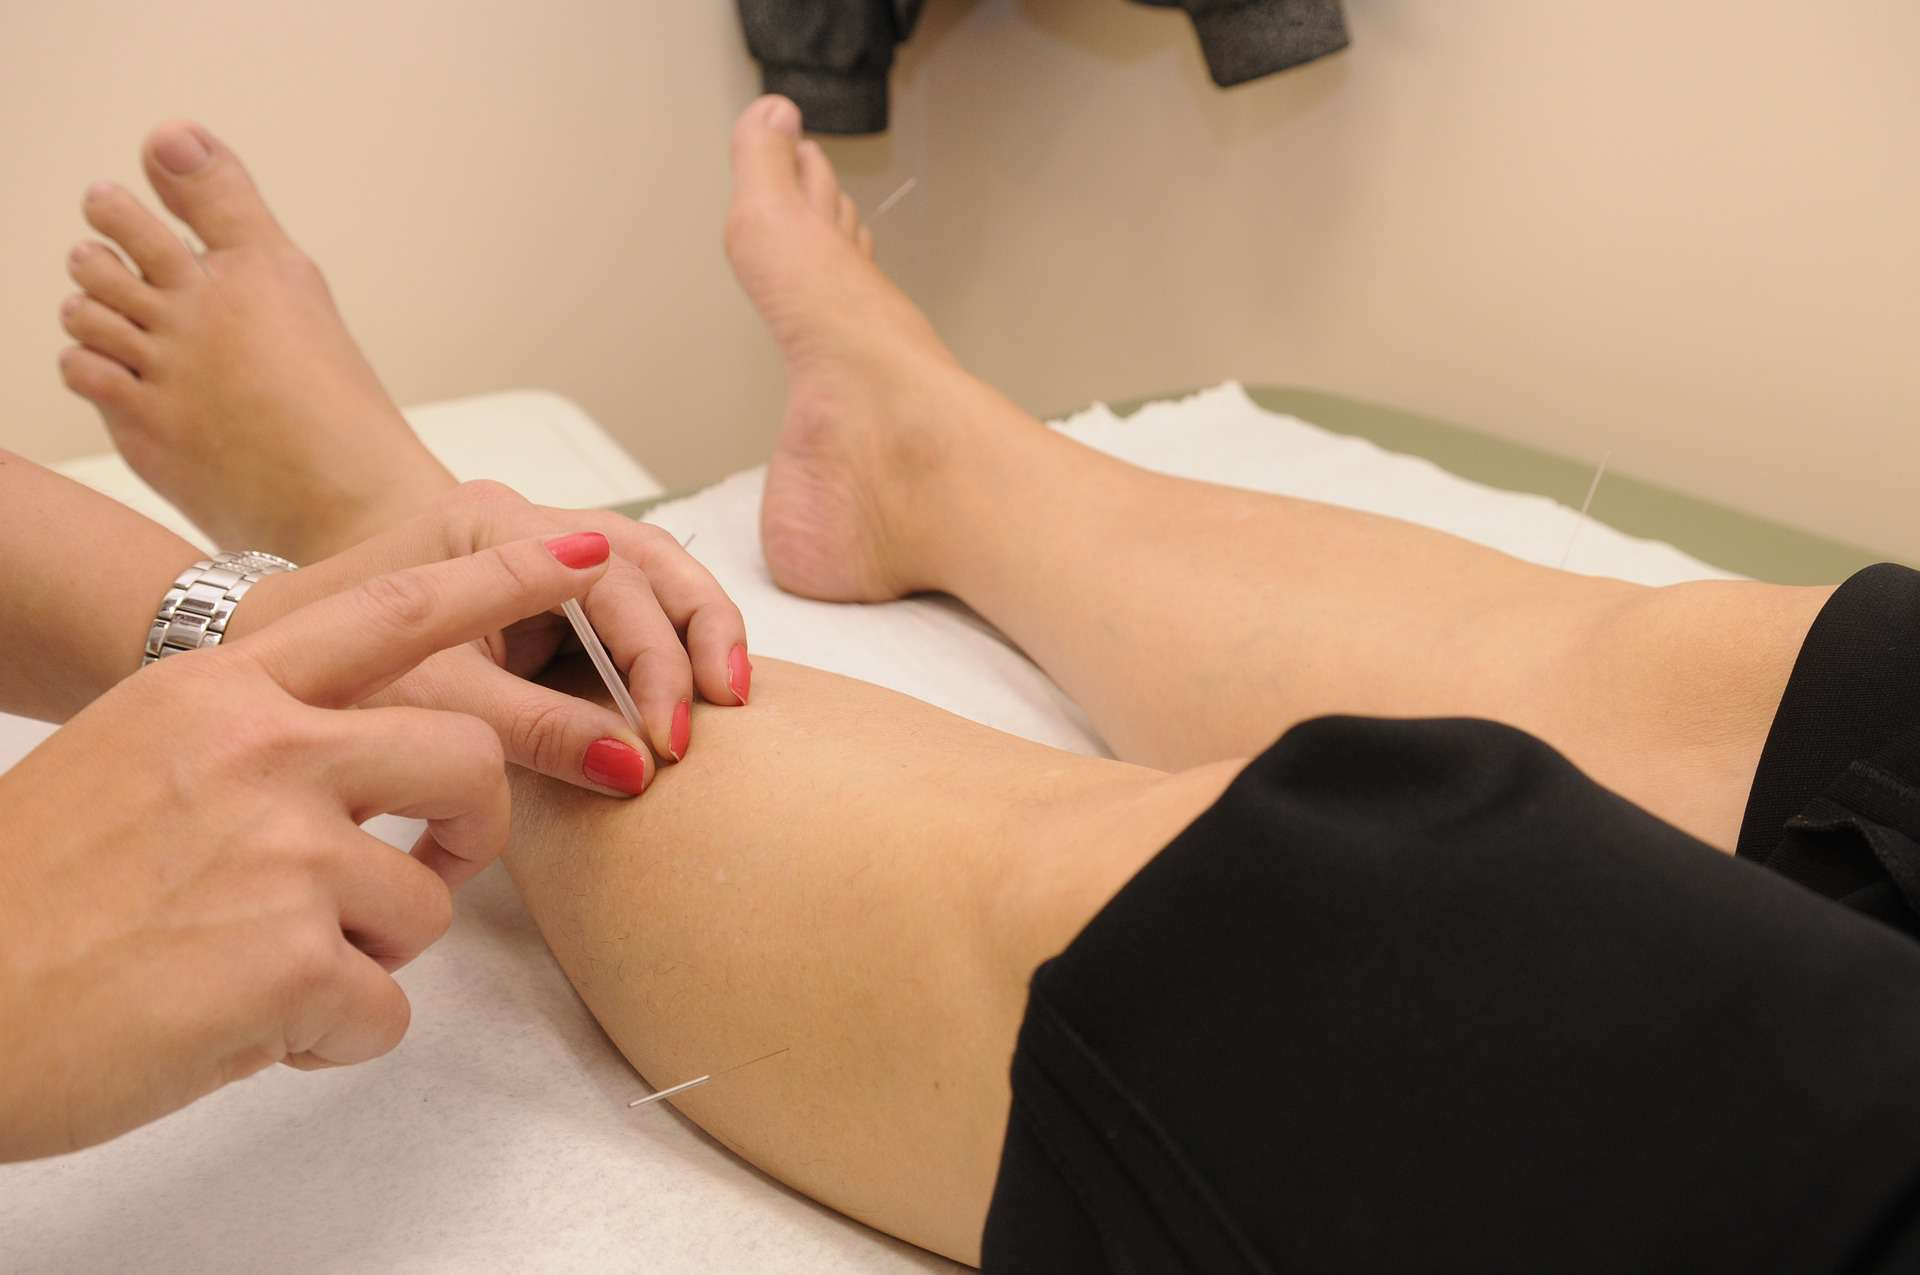 A woman being treated with acupuncture needles in her left leg